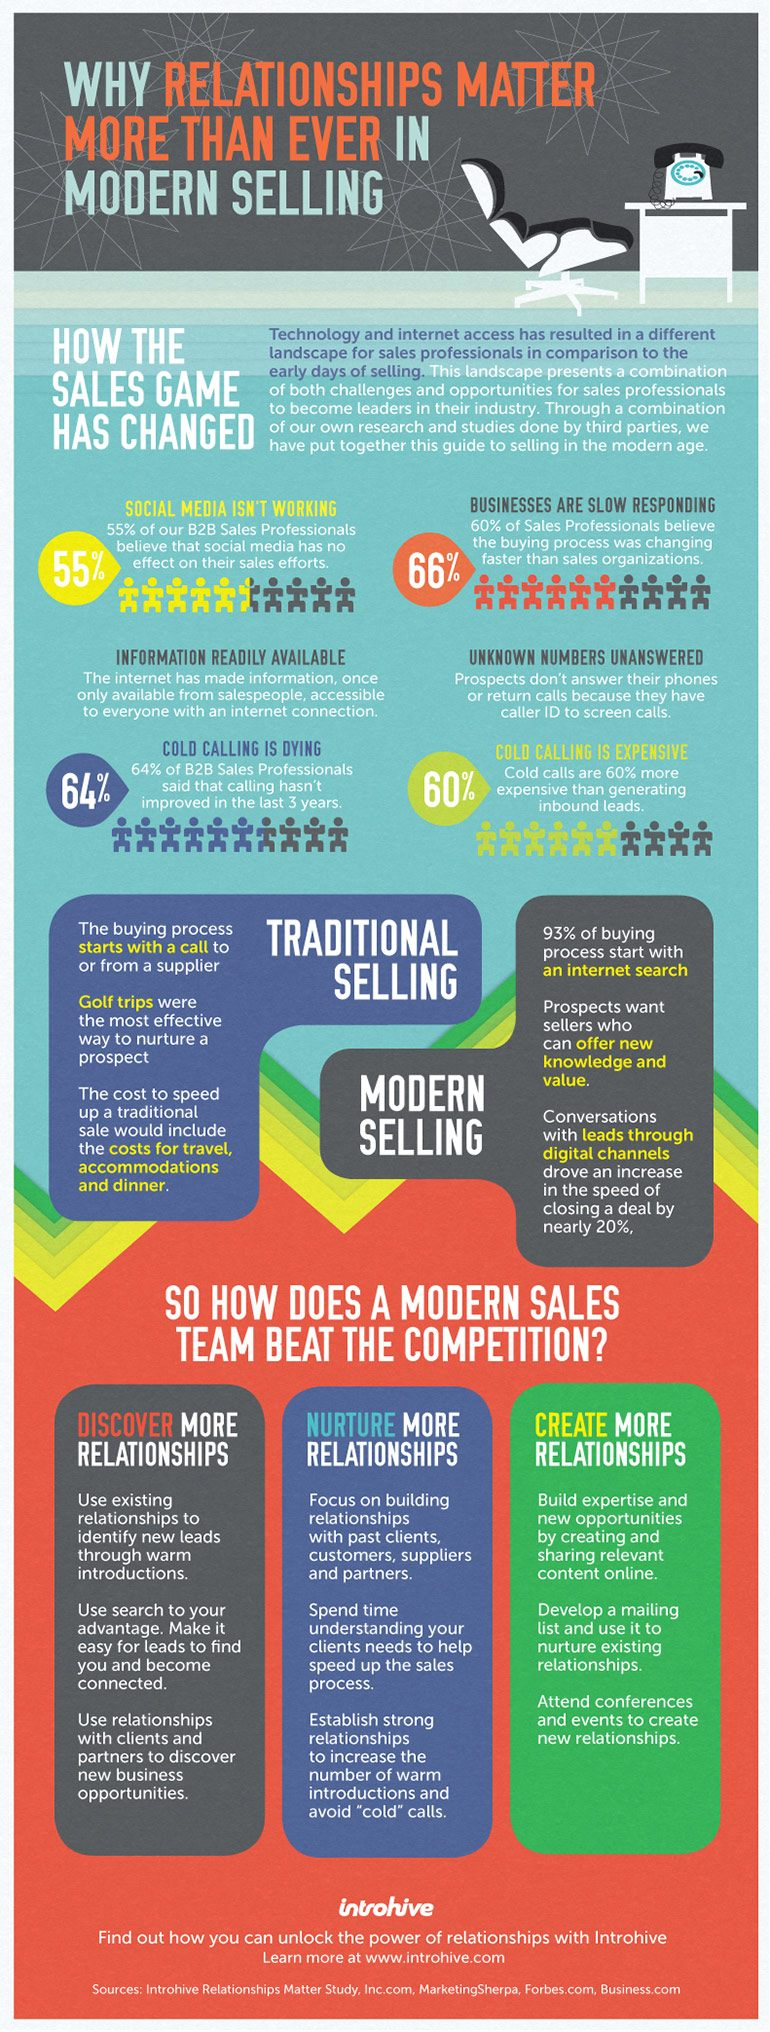 relationship matters the most in modern selling infographic